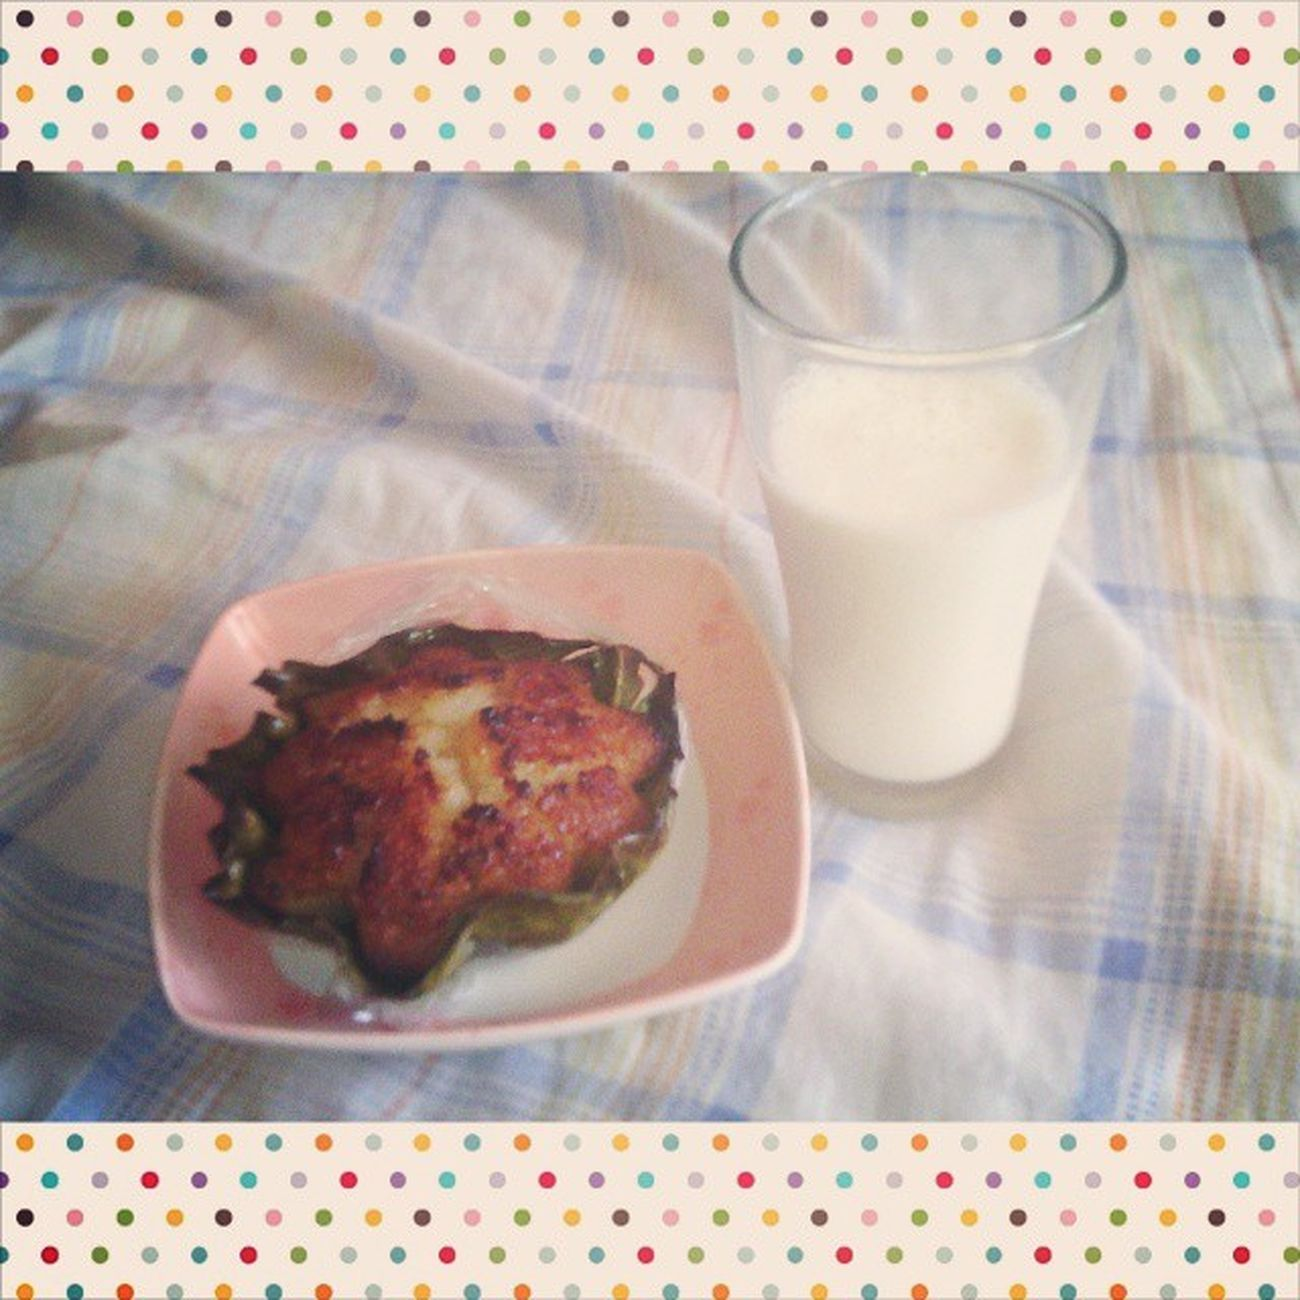 Breakfast muna bago matulog ☺🍴👍 Justgothome Nightshiftduty Food Bibingka Milk HomeAlone Sleeptime😴 Tired Morning